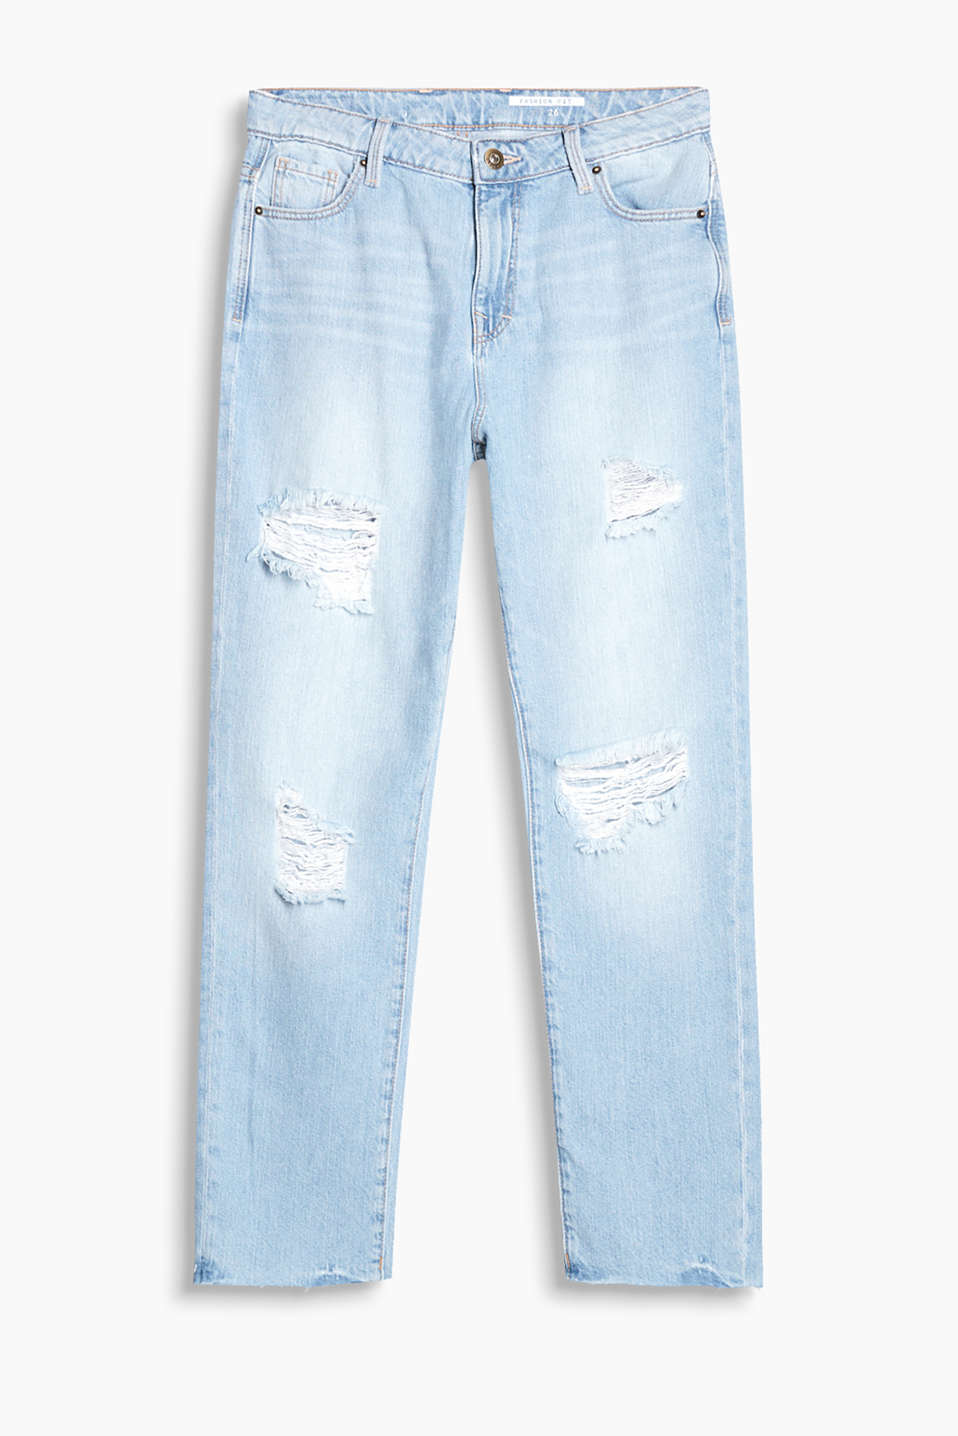 Jeans with washed effects made of 100% cotton